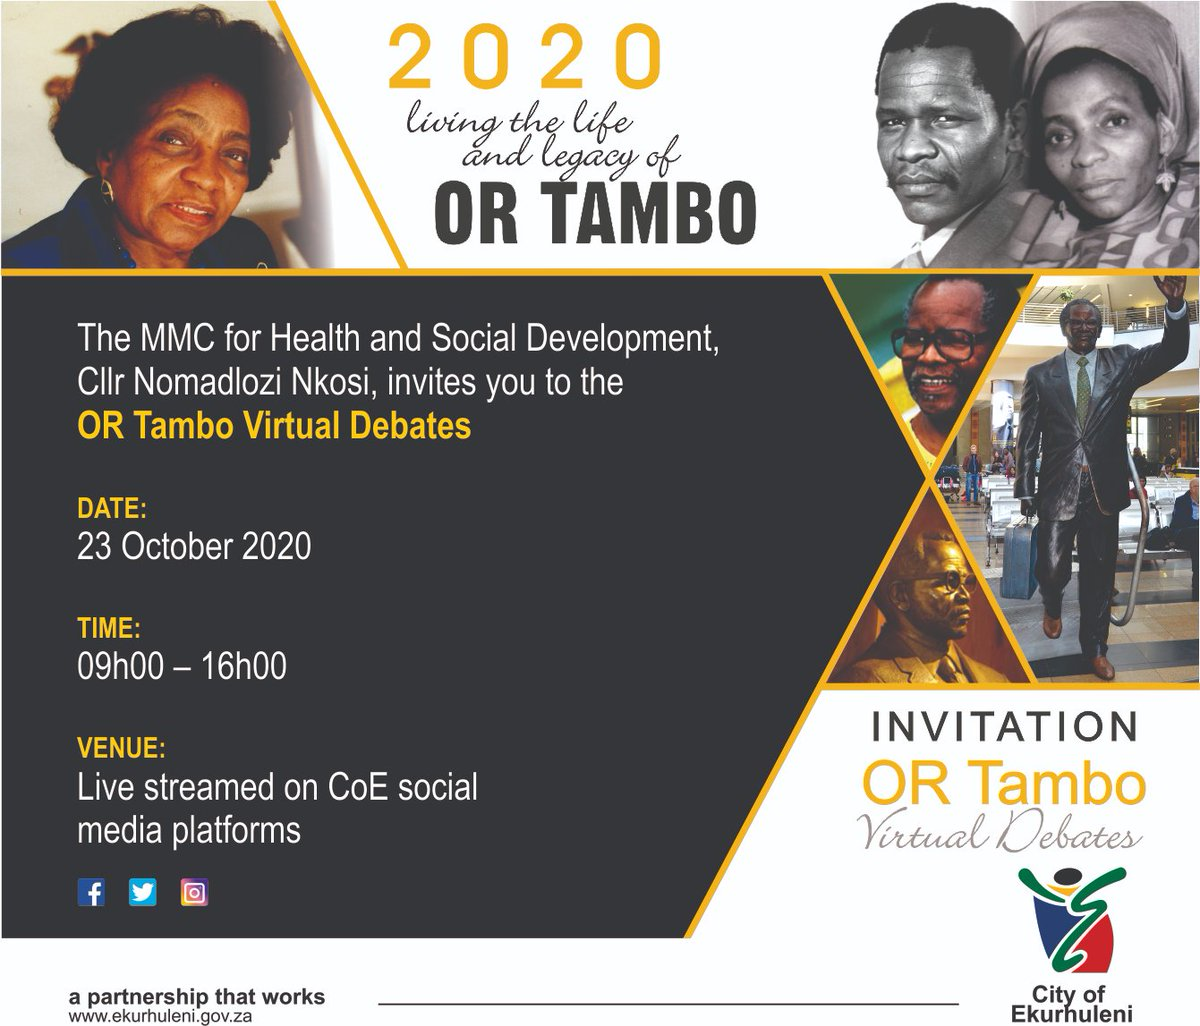 🗣#ORTamboMonth Debates   The youth of Ekurhuleni will go head-to-head in the #ORTambo debates on Friday, 23 October from 09h00 – 16h00.  Participants will come up with solutions to problems faced in their communities drawing on #ORTambo's legacy to fight global pandemics. https://t.co/OuRsUSZj5h